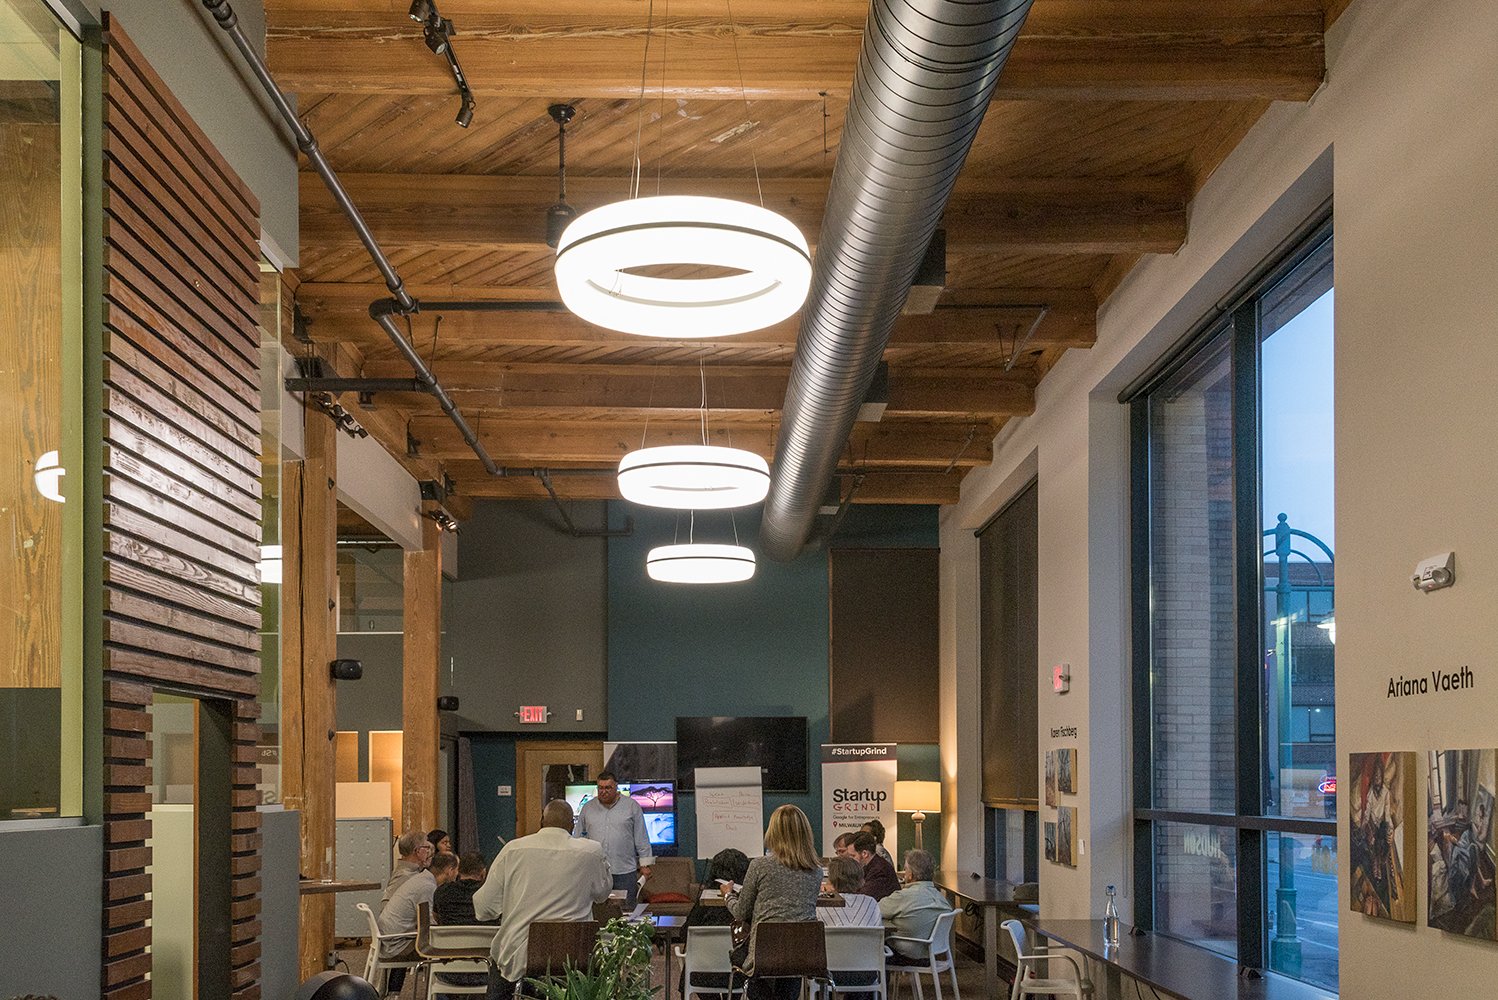 Meridian Round pendant is perfect for office lighting, seen here above a casual café area in a large office building.